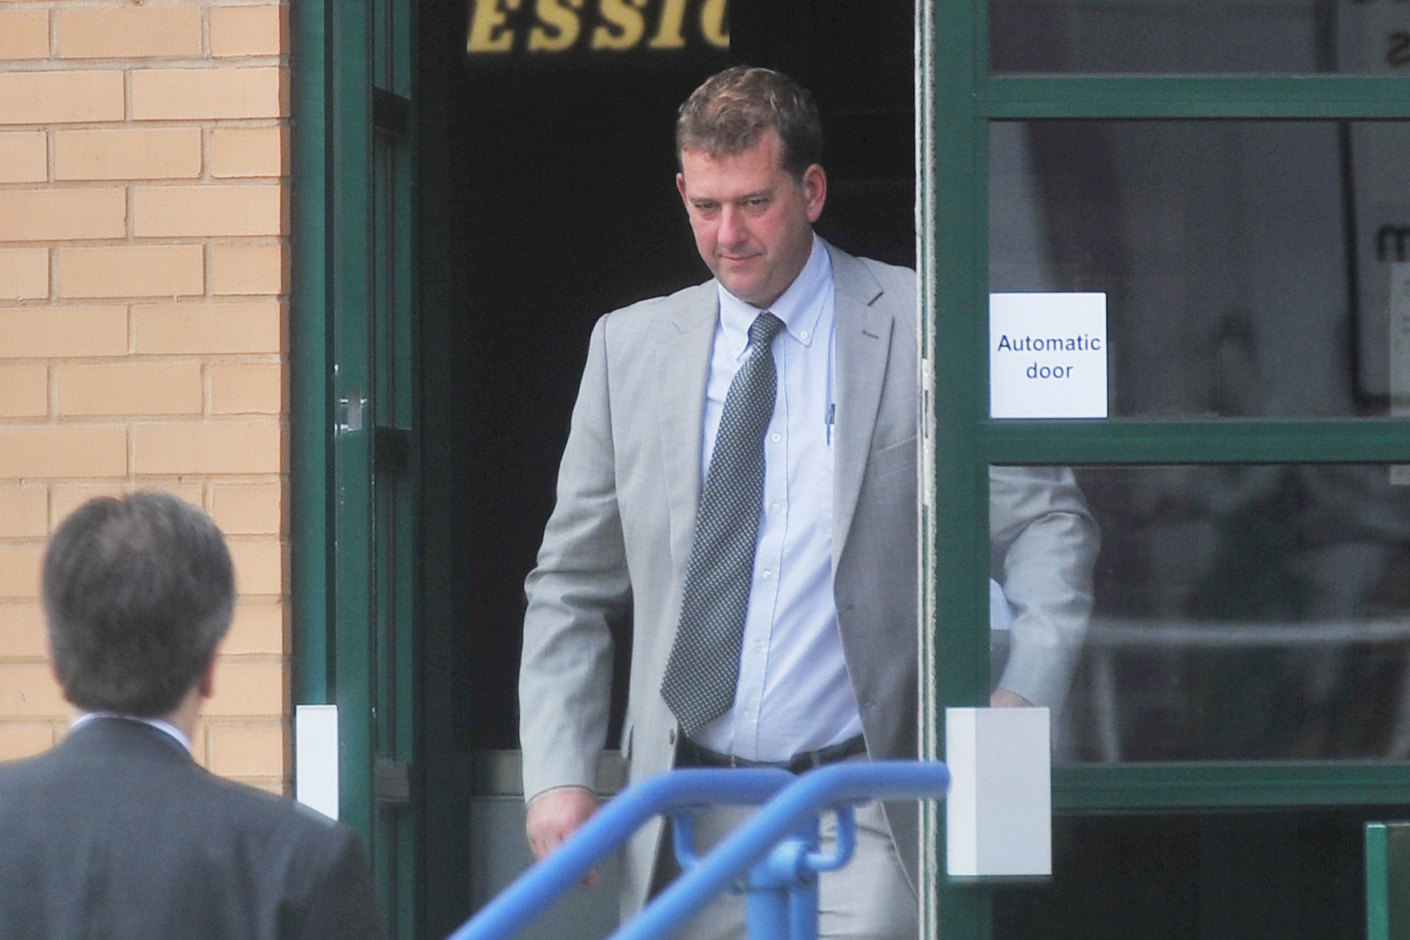 Lee Averies leaving Swindon magistrates court after a hearing in 2015 Photo: Thomas Kelsey